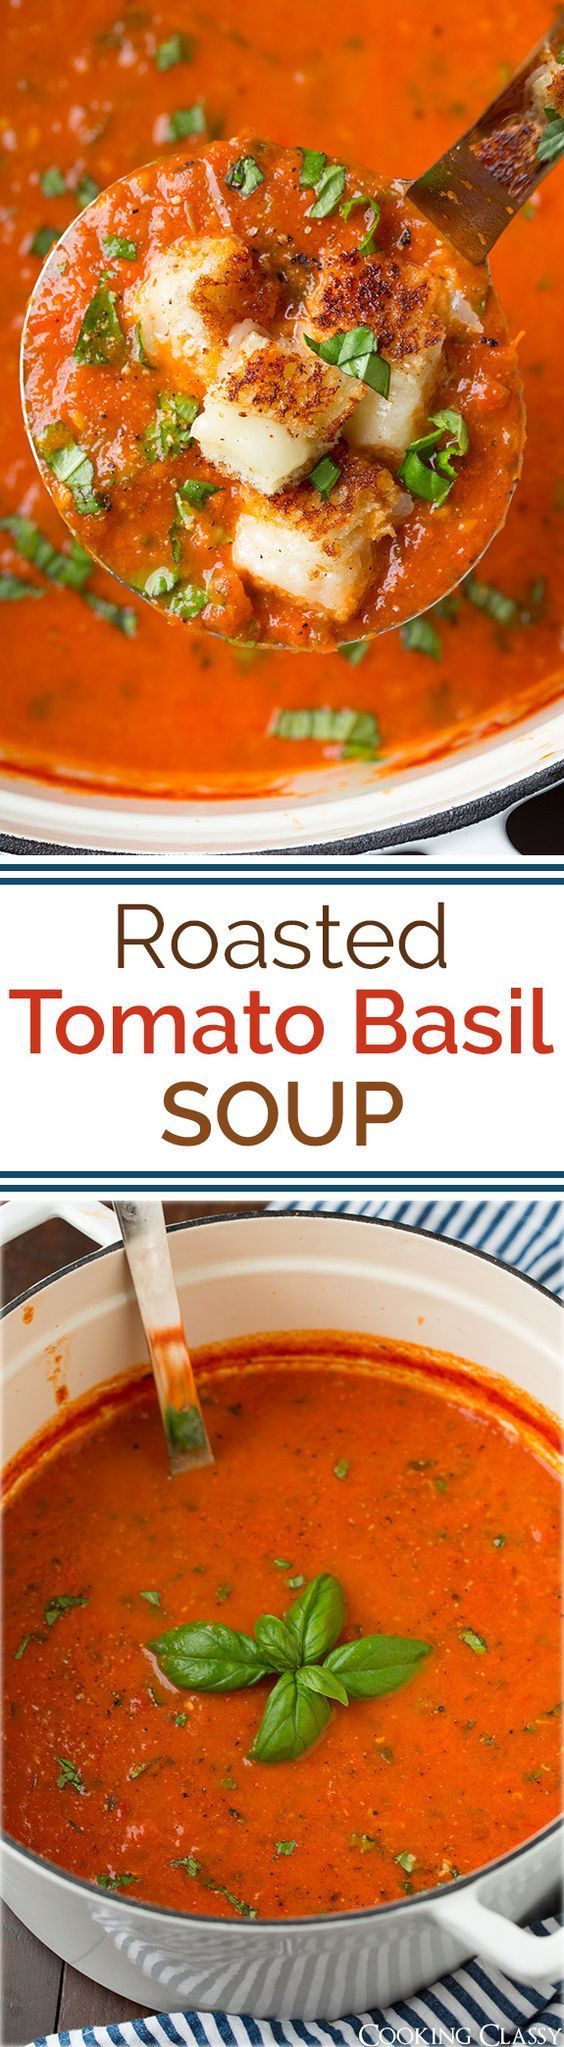 Roasted Tomato Basil Soup (with optional grilled cheese croutons ...